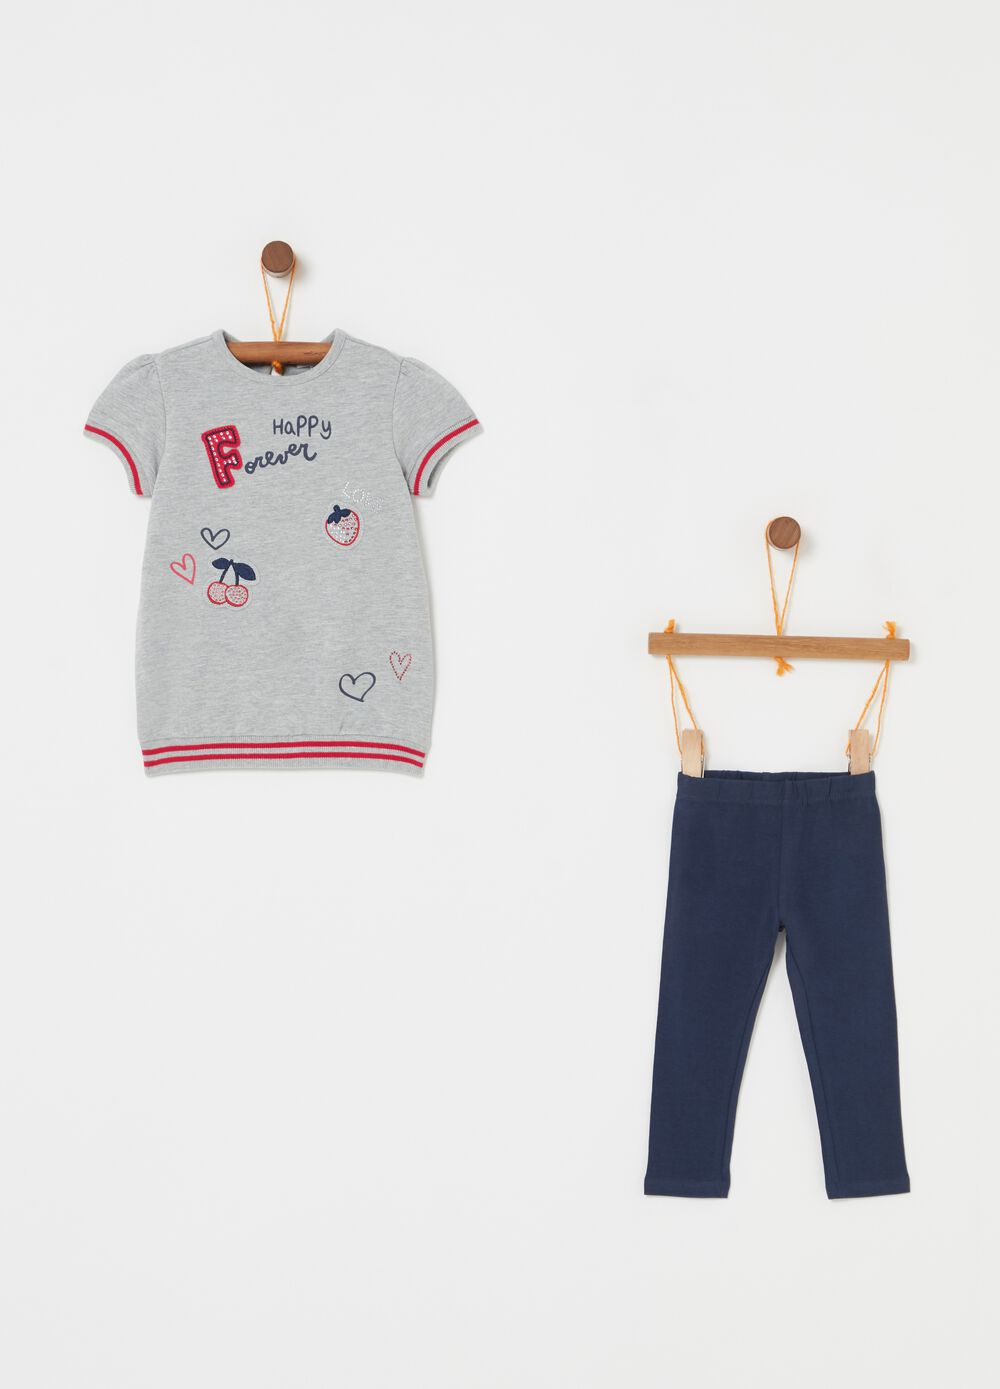 Jogging set with lettering print